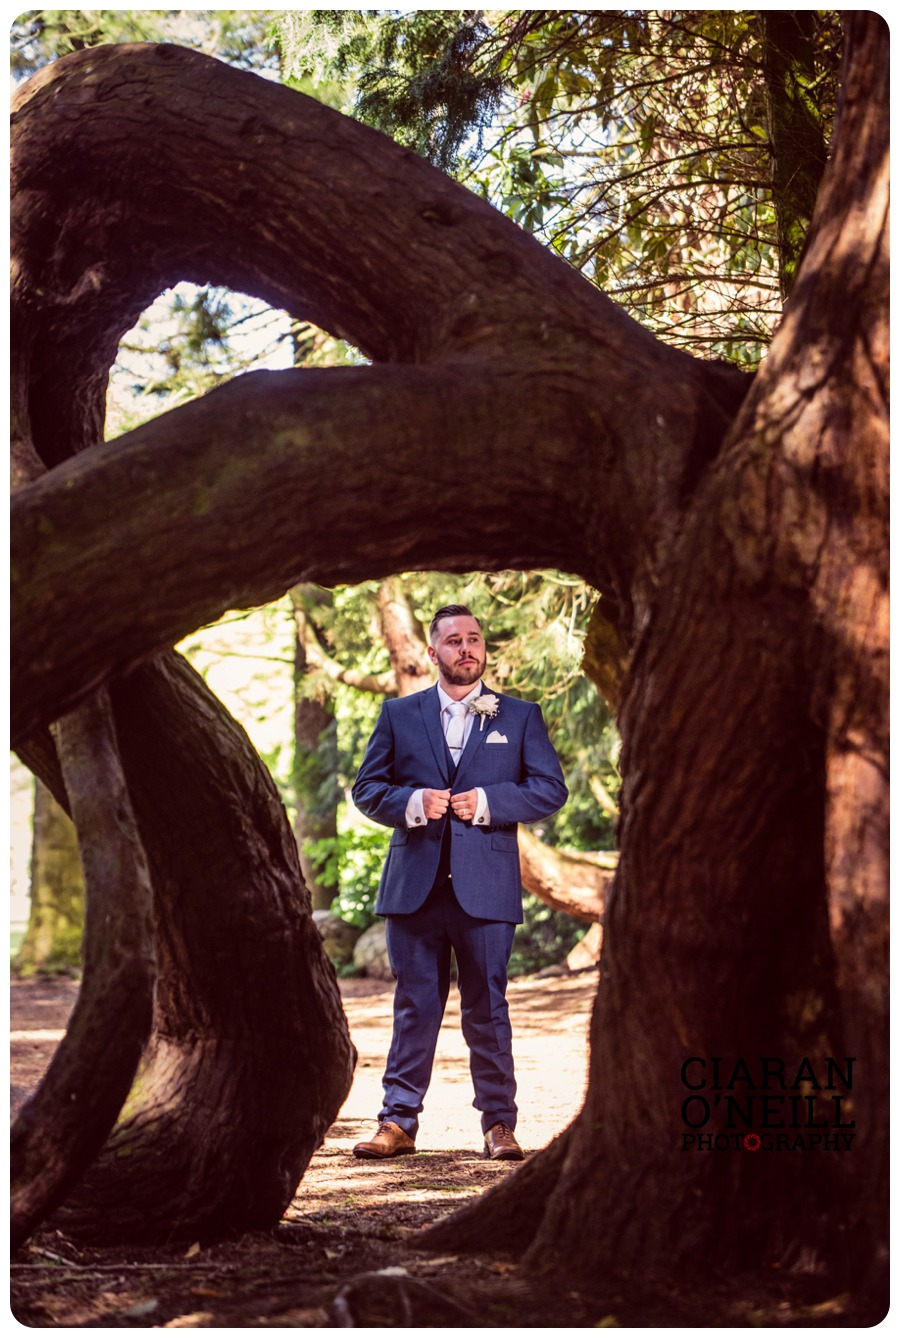 Genna and Scott's wedding at Crowne Plaza by Ciaran O'Neill Photography